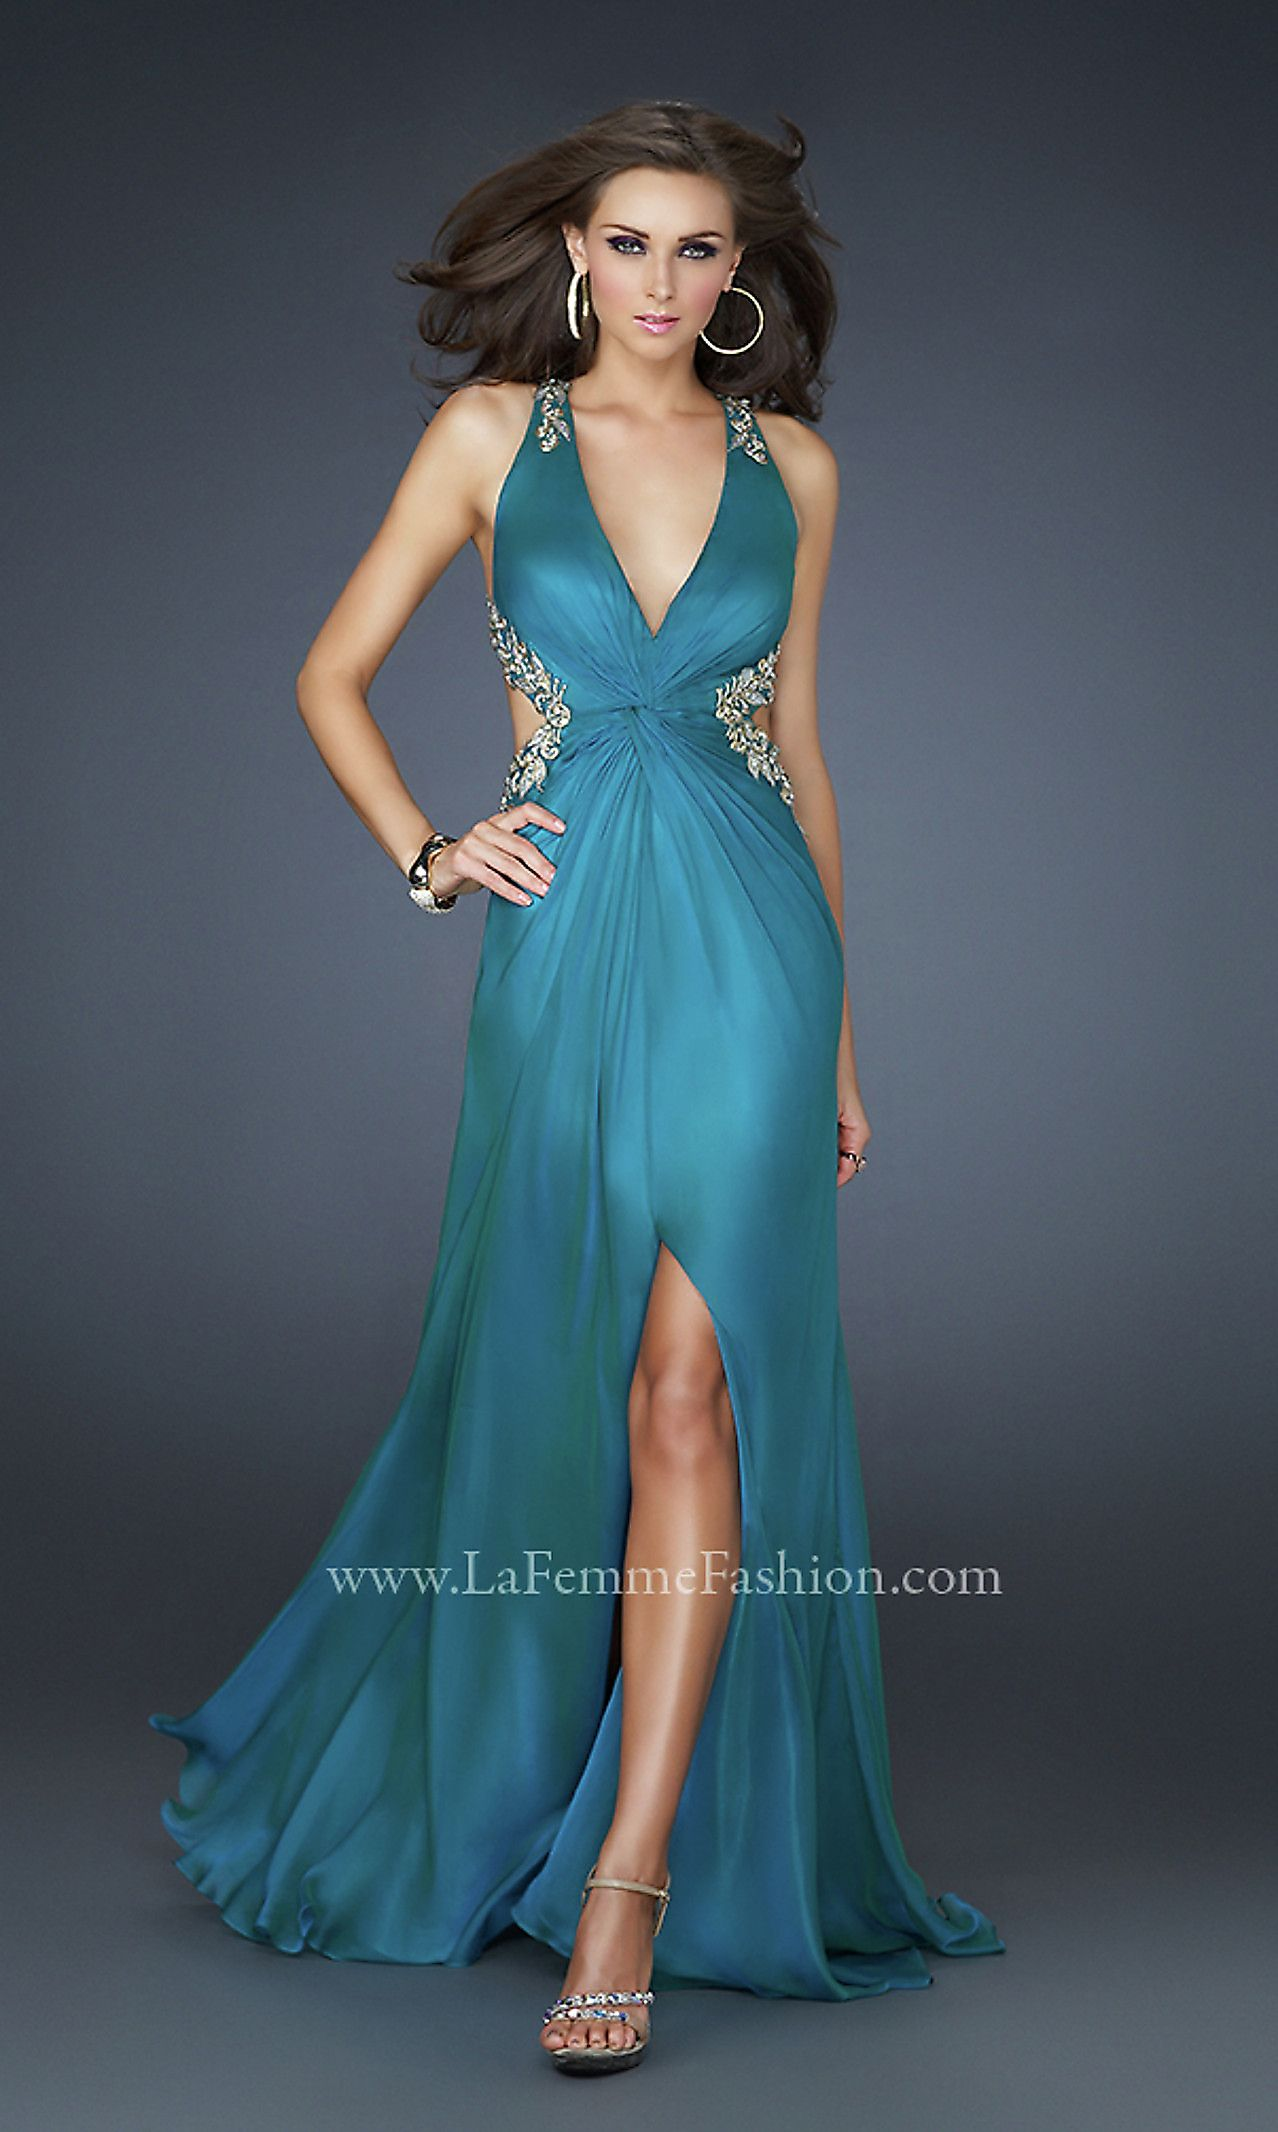 Pin by lauren mcnair on all dressed up pinterest prom gowns and